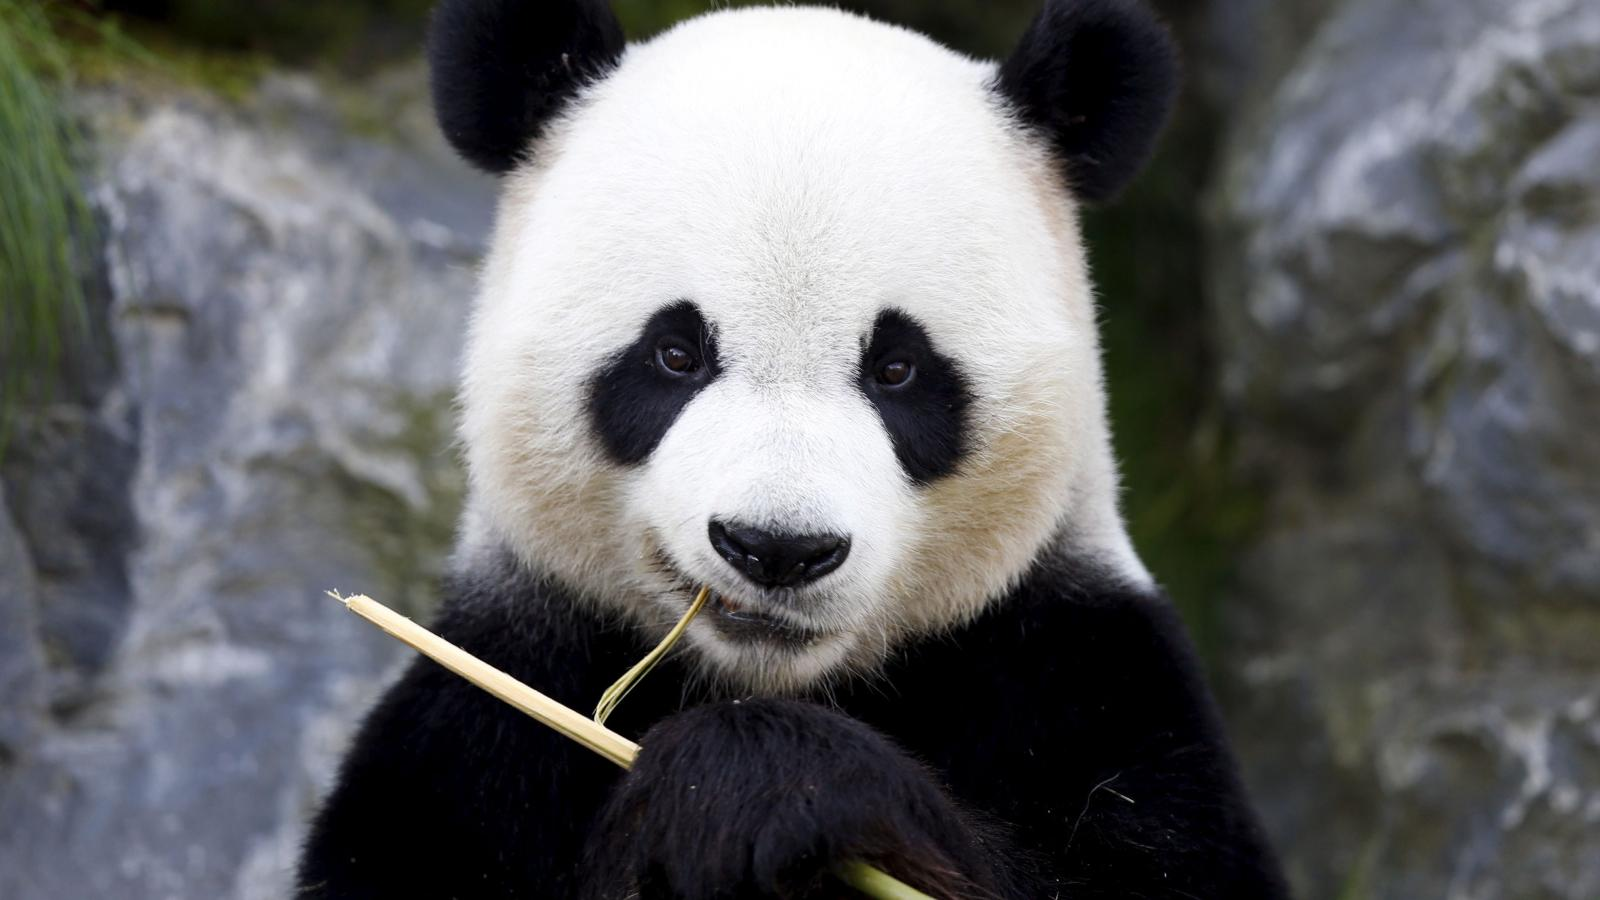 Scientists puzzled by pandas' black eye patches turning white — Quartz